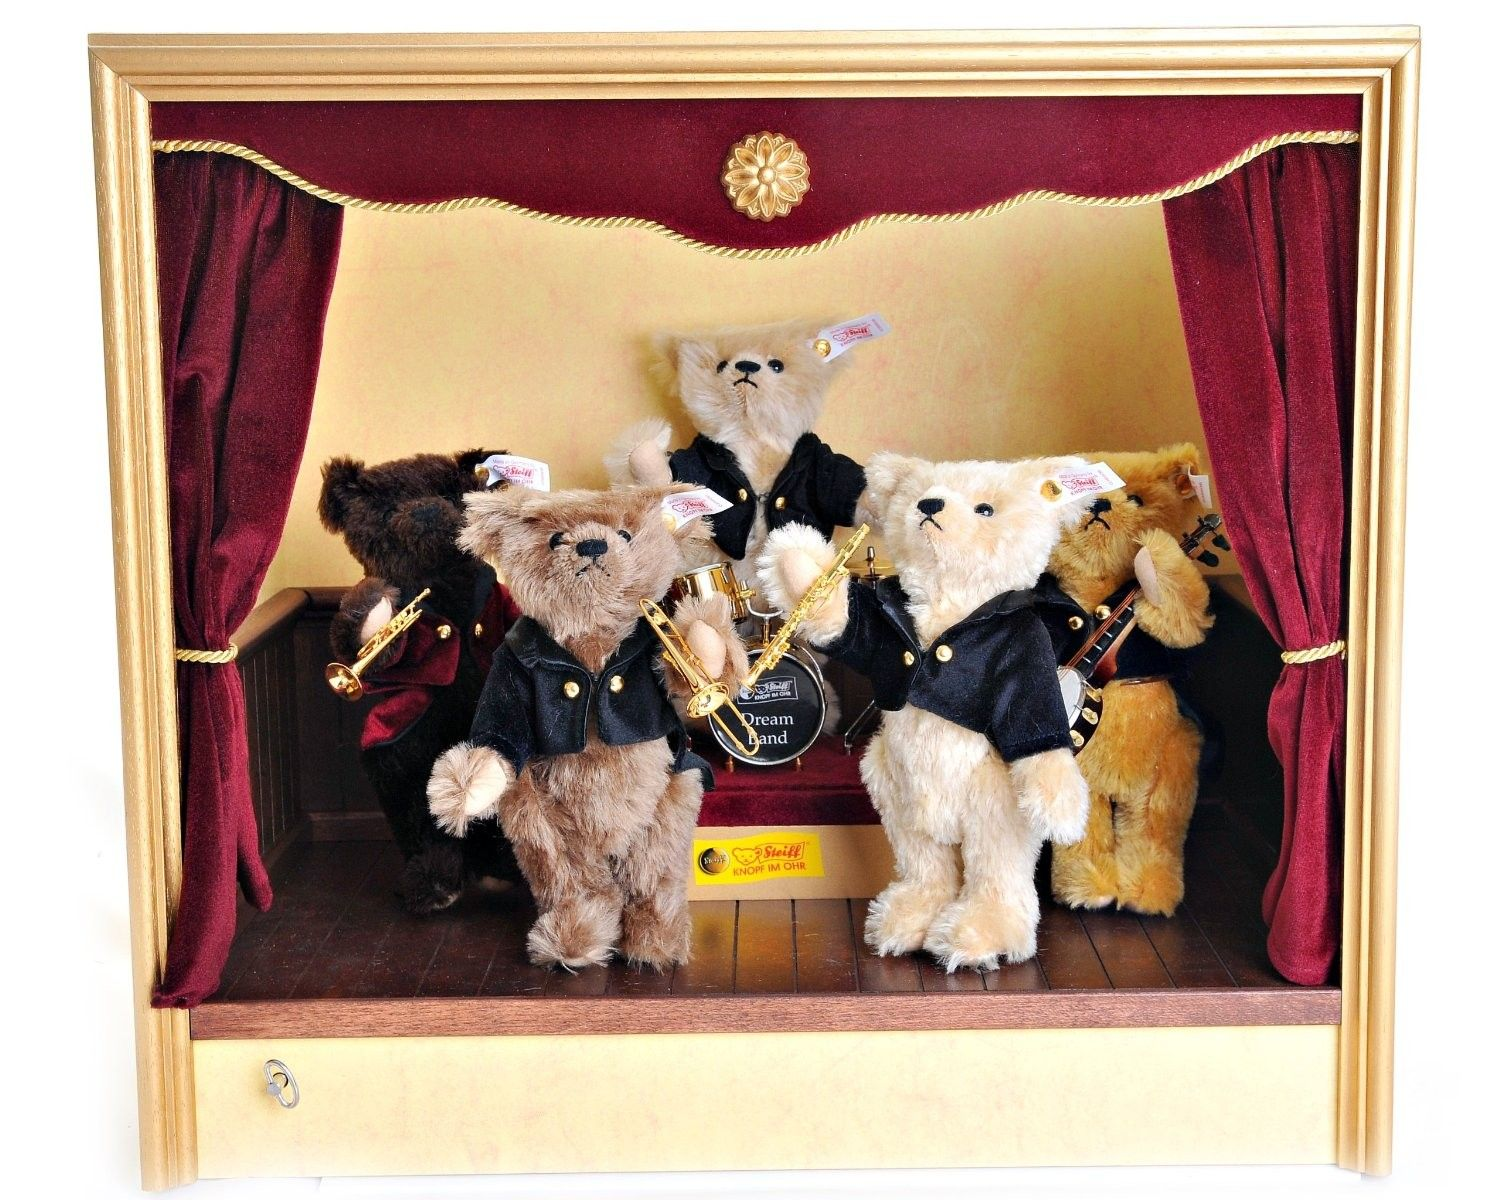 """STEIFF Millennium Band Stand - EAN 038808 Limited Edition of 2000 pieces worldwide Issued in the year 2000 to celebrate the Millennium, with a music box mechanism that plays """"When the saint go marching in"""""""